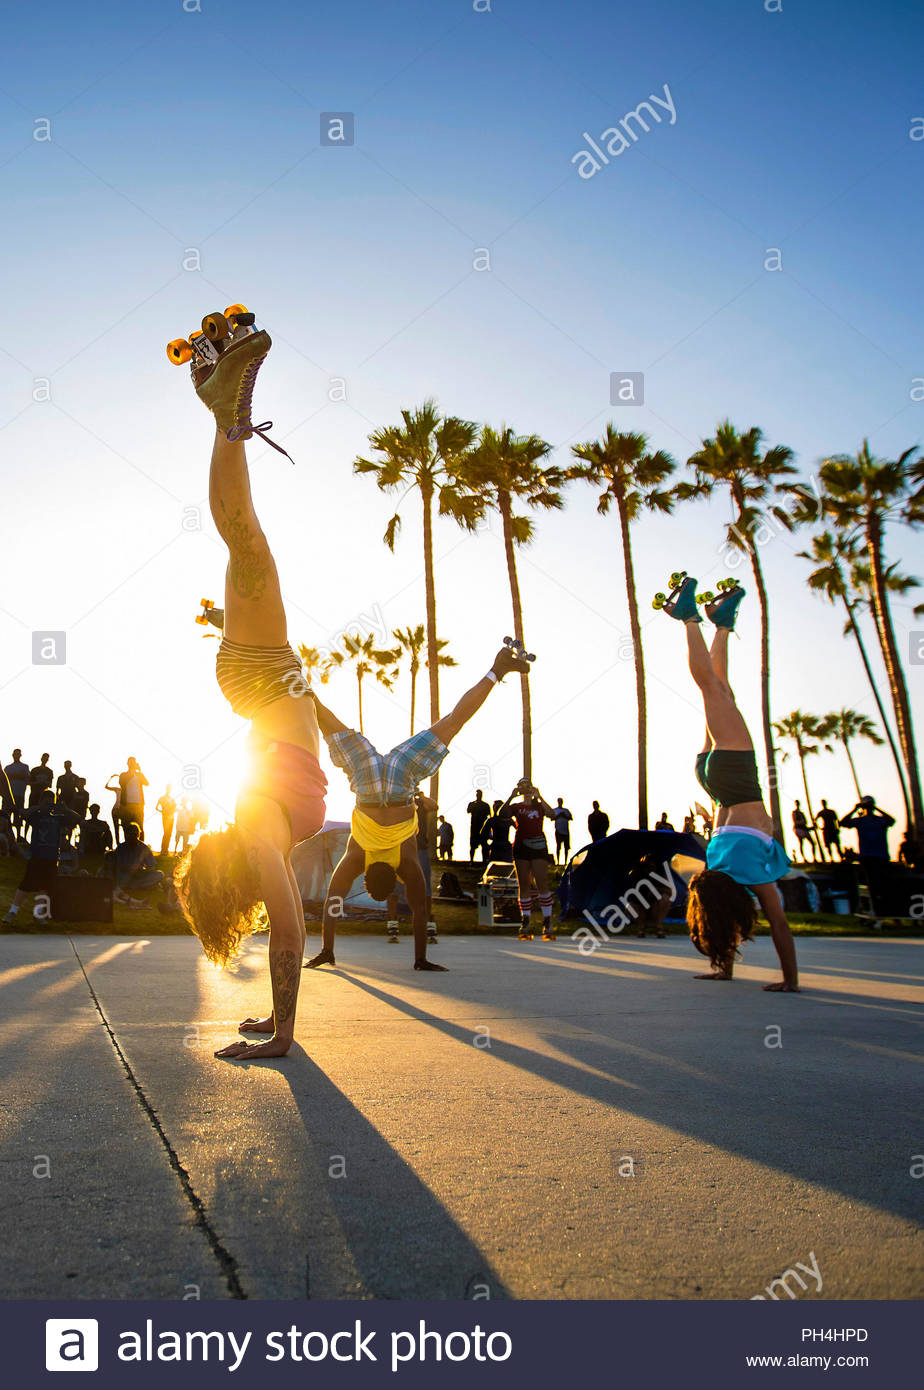 Group of women in roller skates doing handstands at sunset - Stock Image